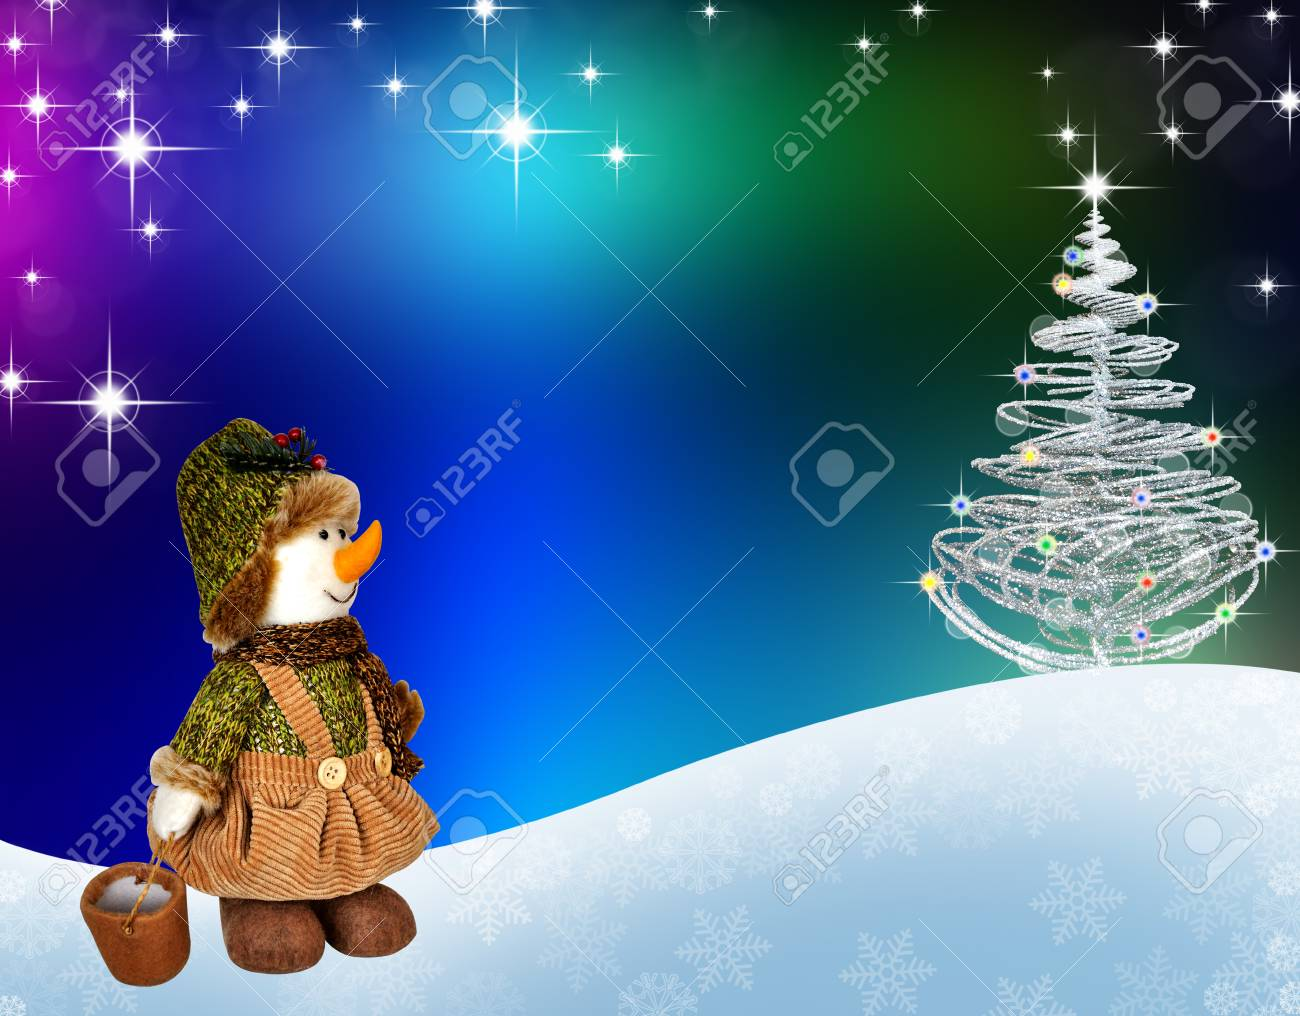 Snowman On The Background Of Christmas Tree And Greetings In Stock